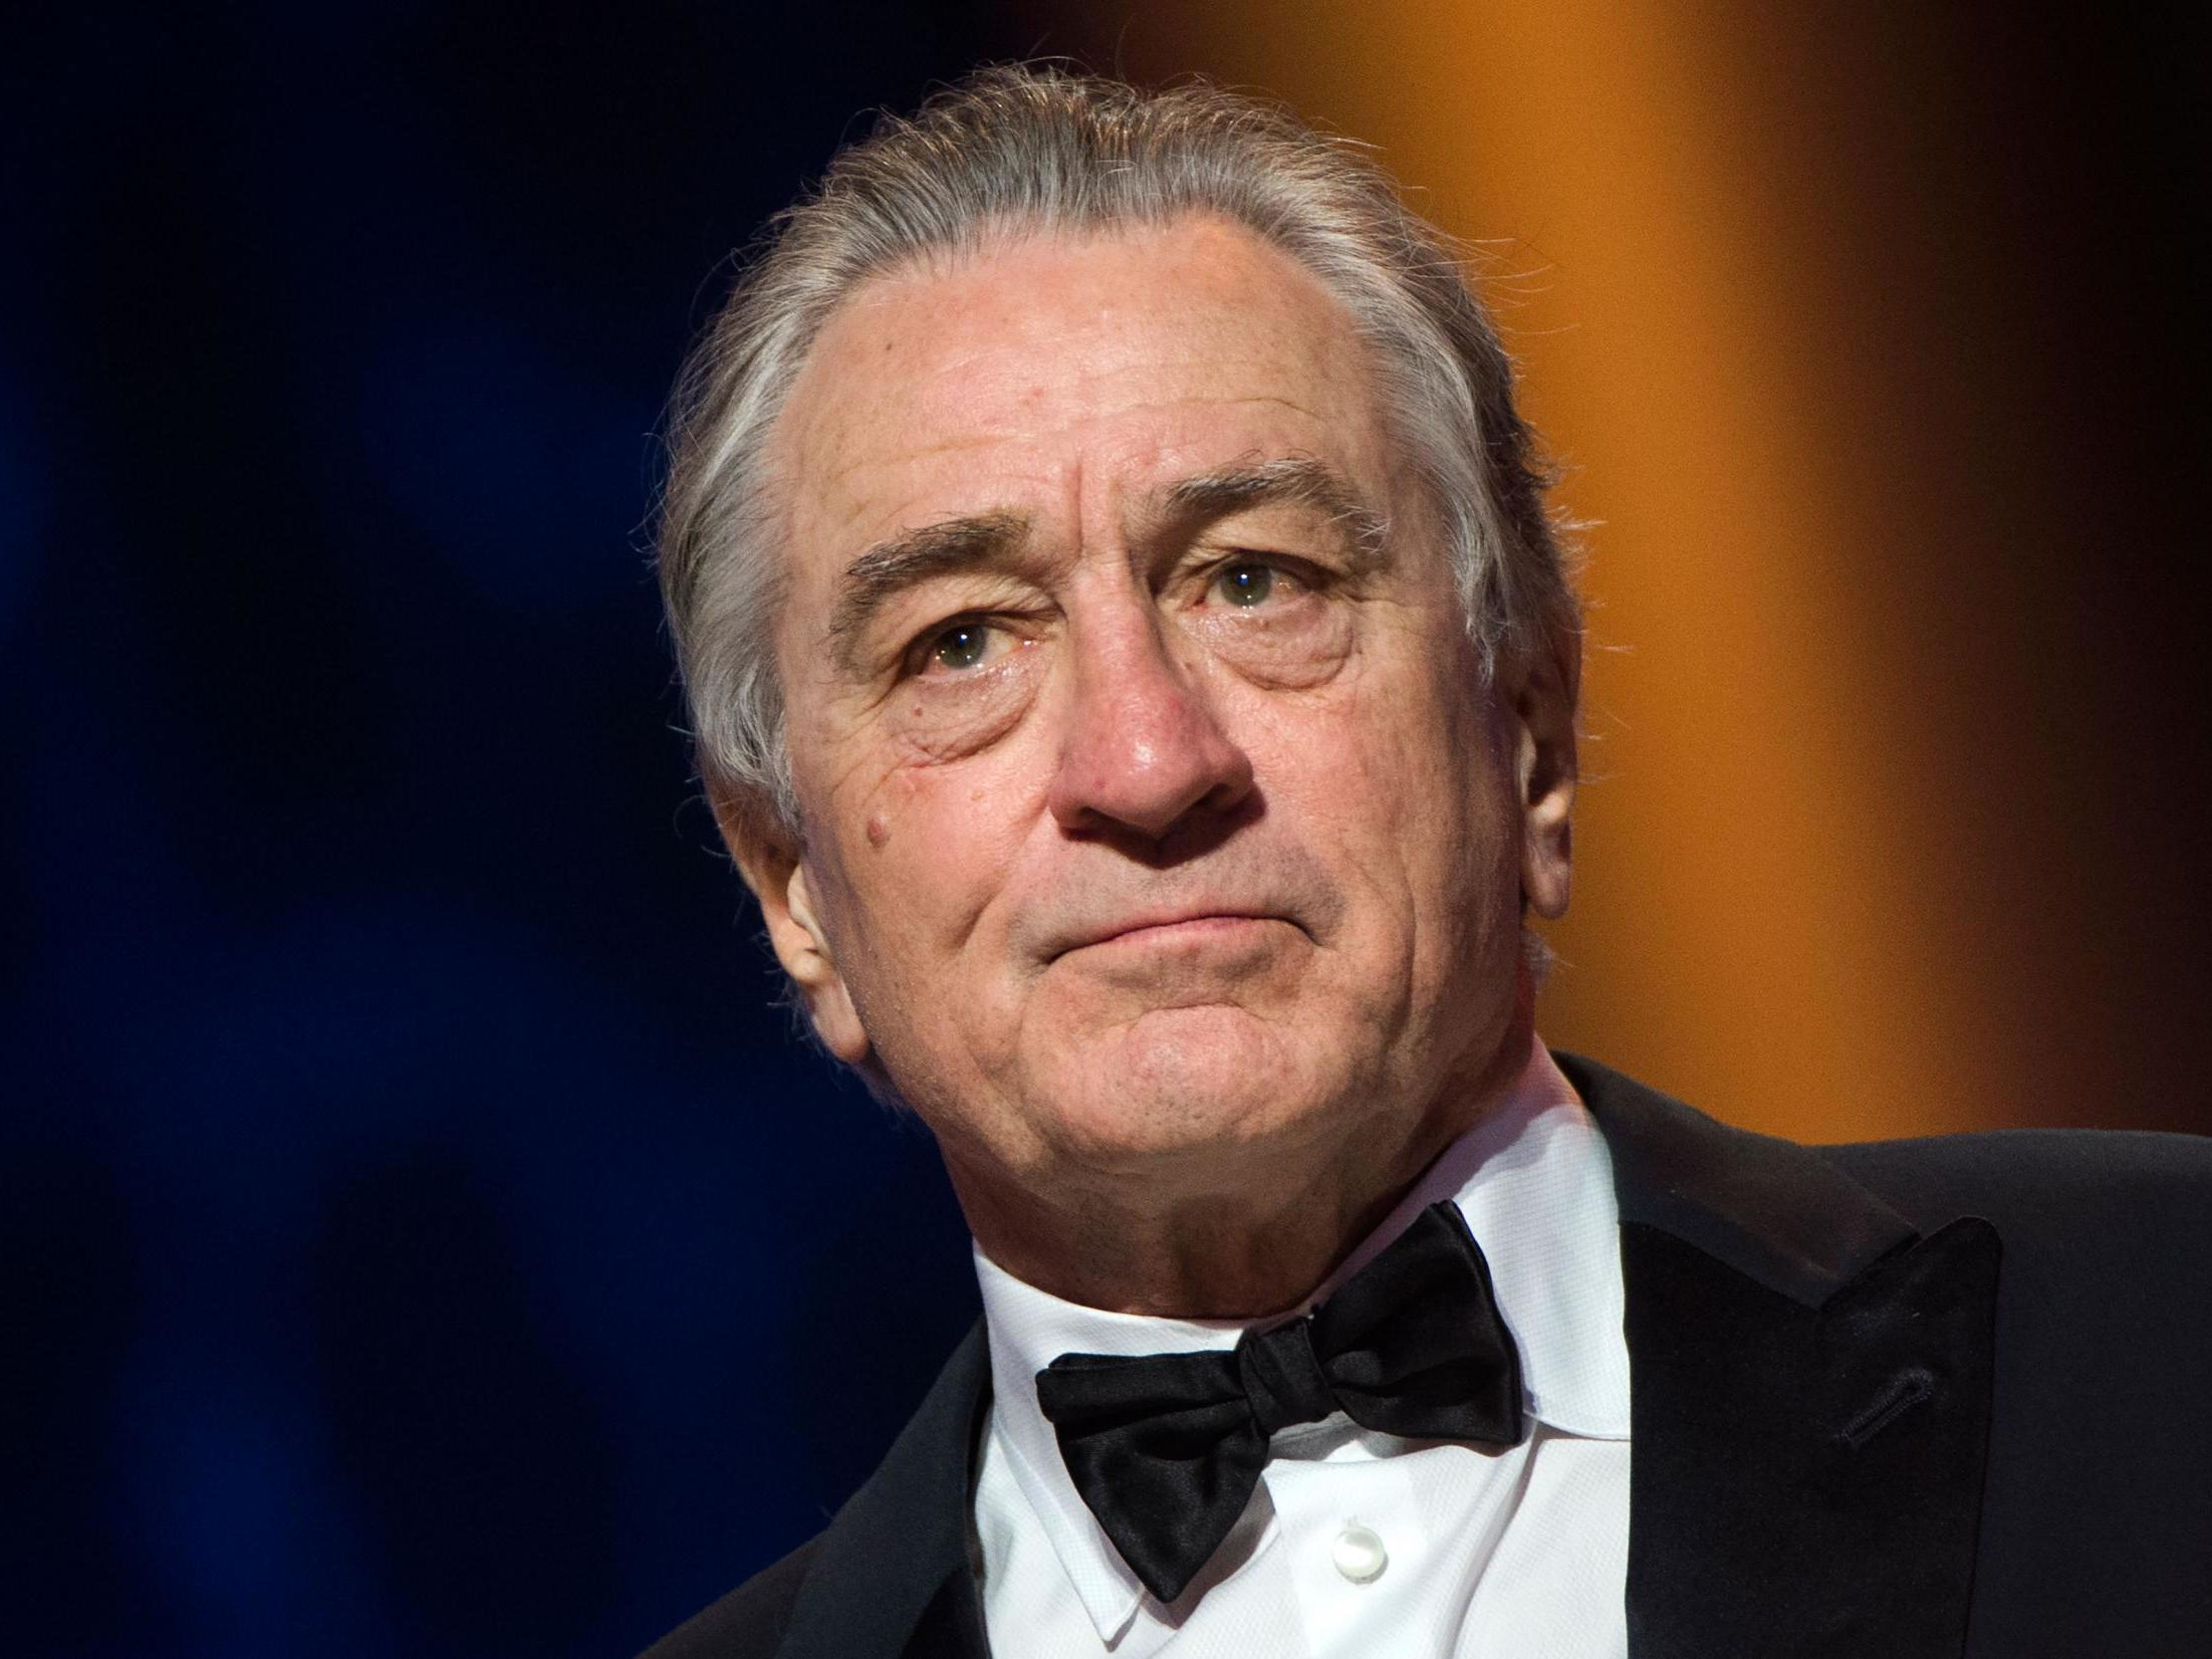 Robert De Niro says he hopes 'low life' Trump gets impeached